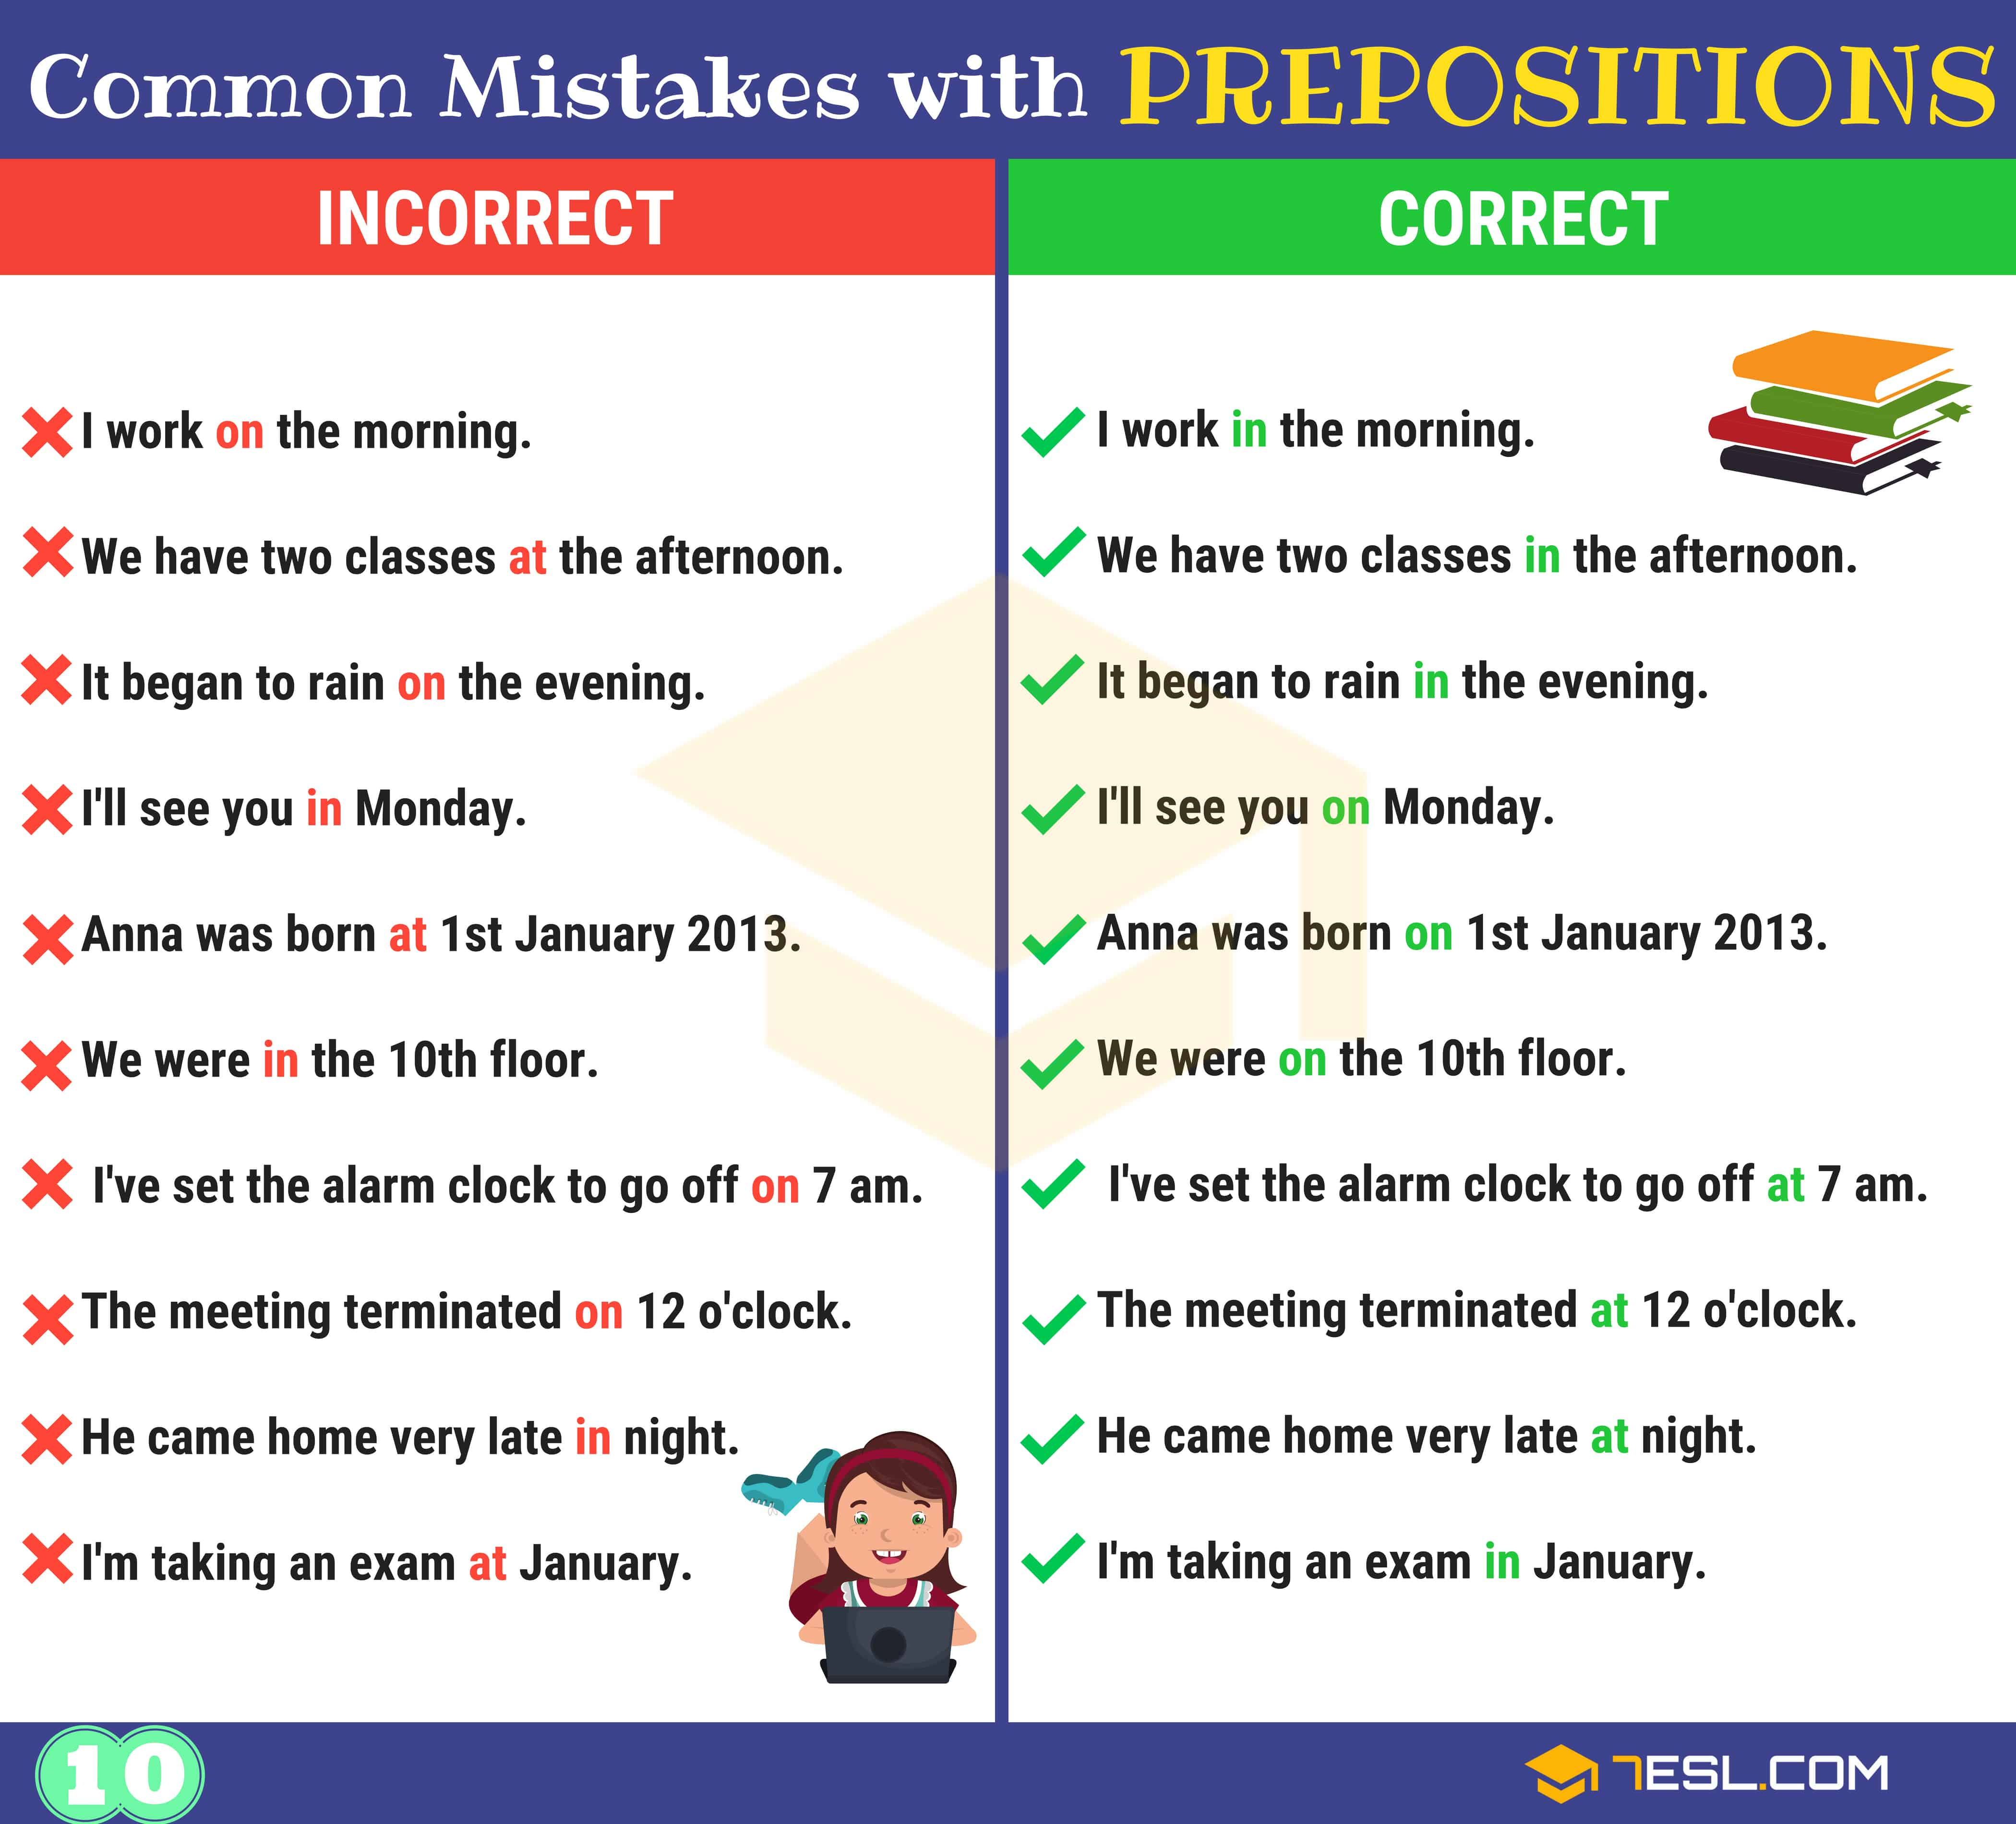 130+ Common MISTAKES With PREPOSITIONS And How To Avoid Them 11